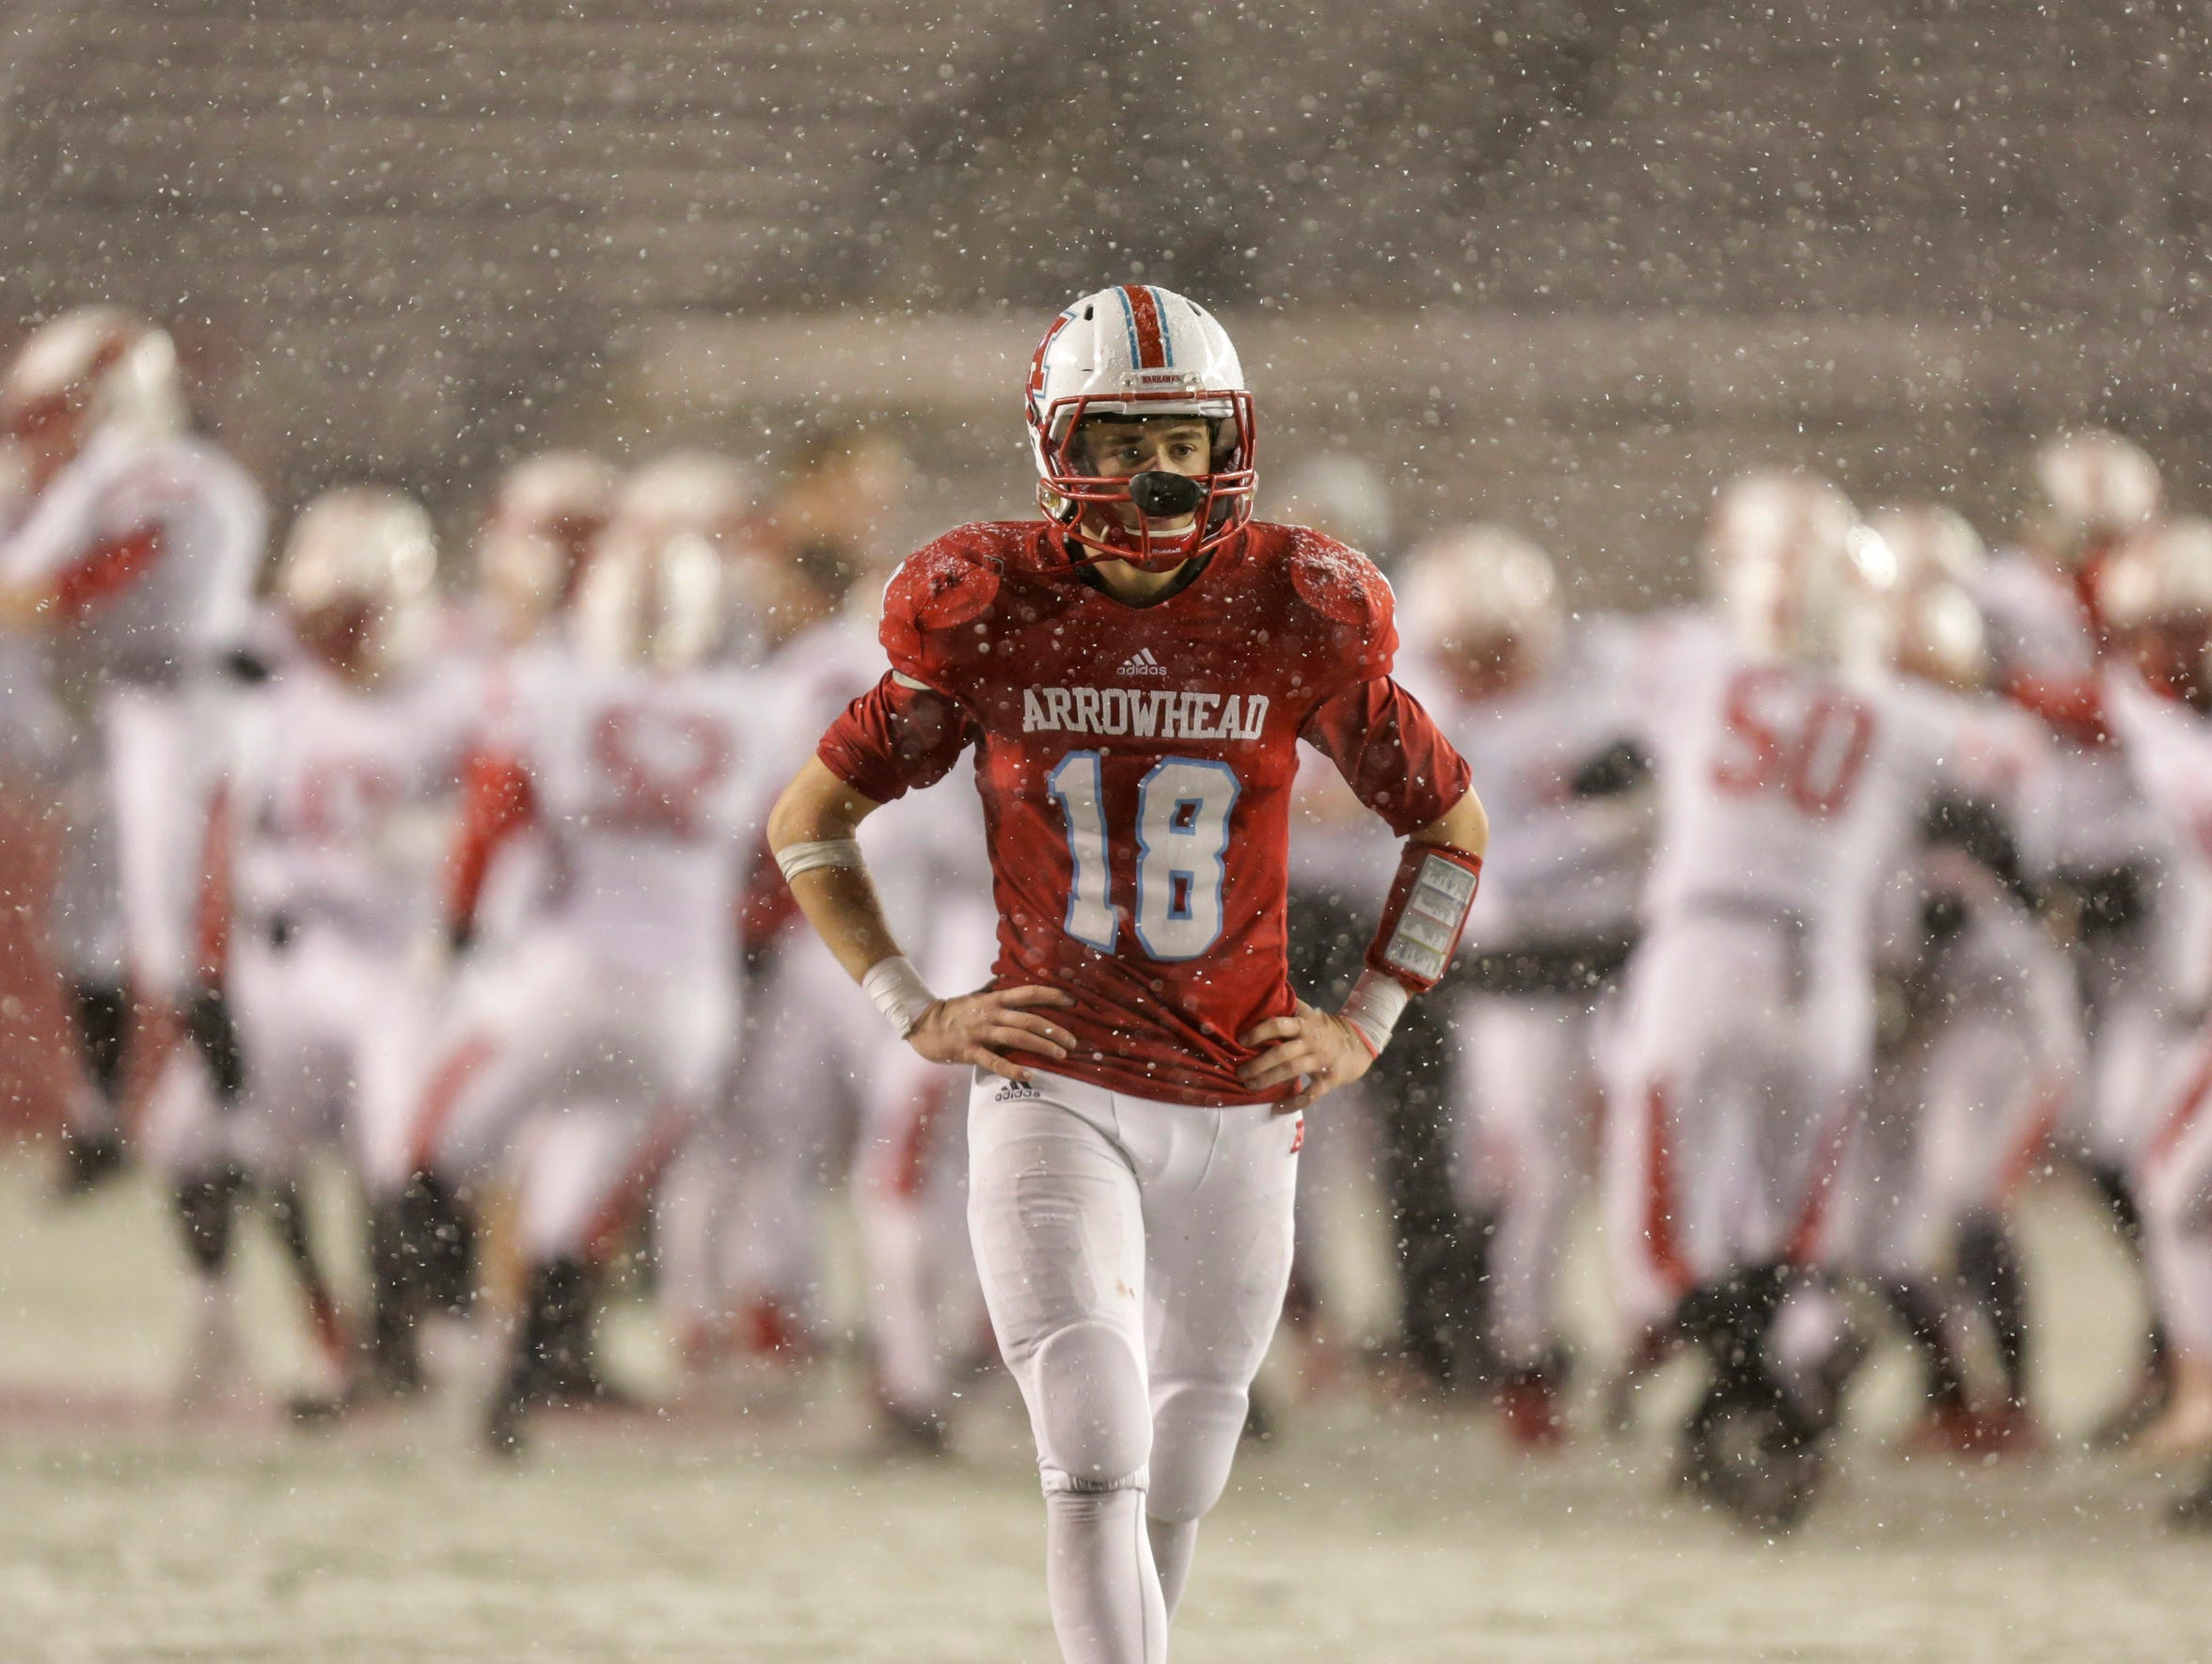 Arrowhead's Tyler Jones reacts after Kimberly defeated